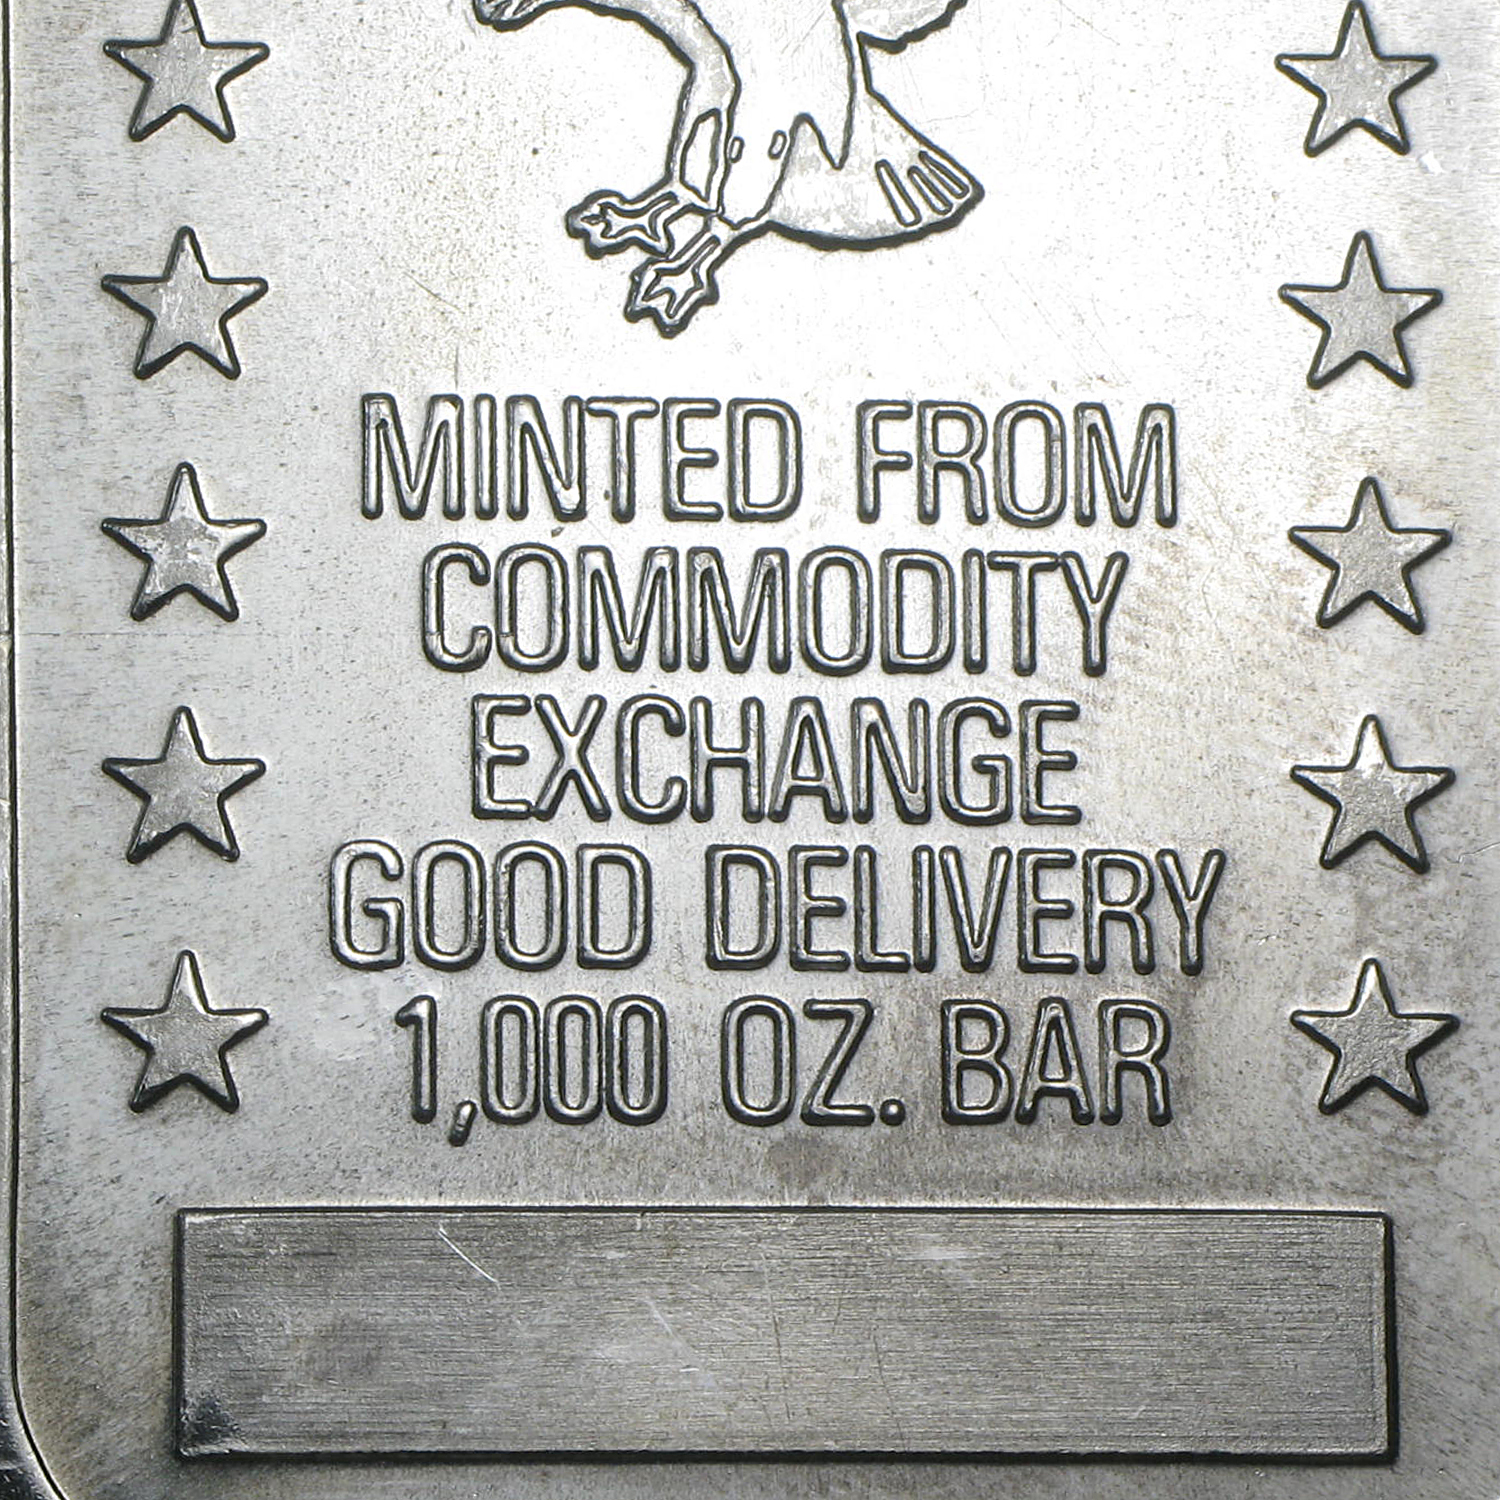 10 oz Silver Bars - Commodity Exchange